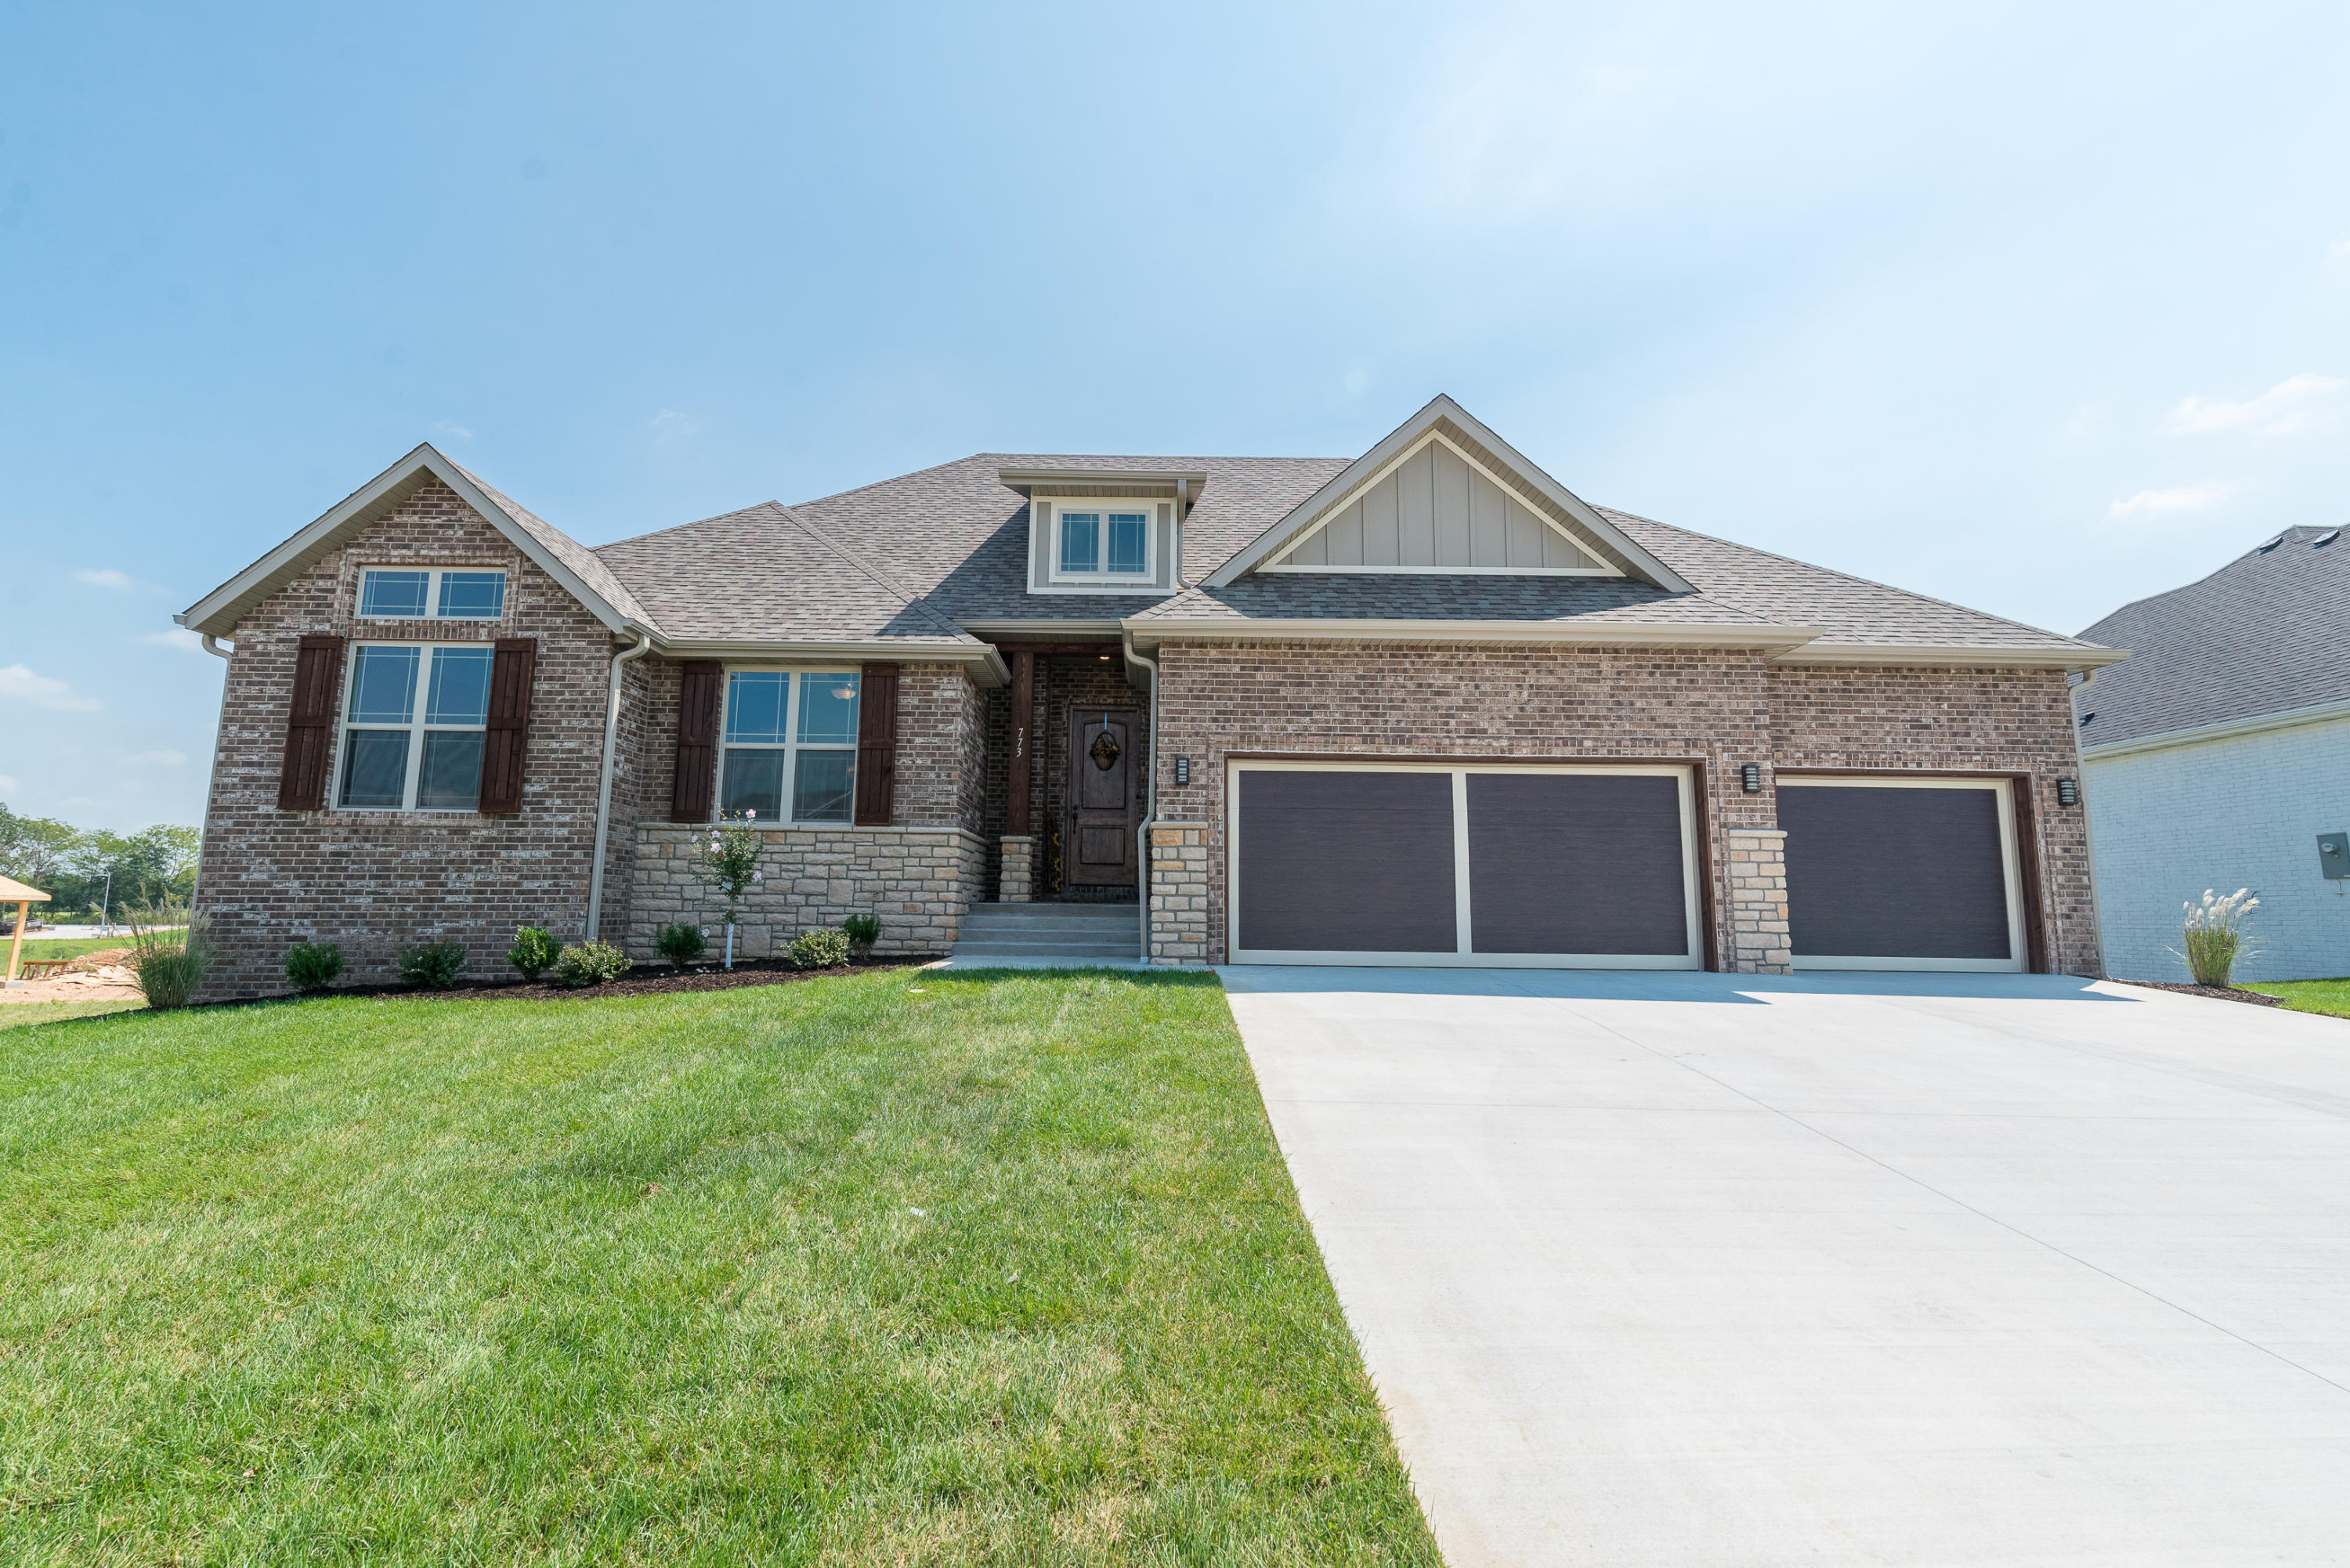 773 North Foxhill Circle #Lot #112 Nixa, MO 65714